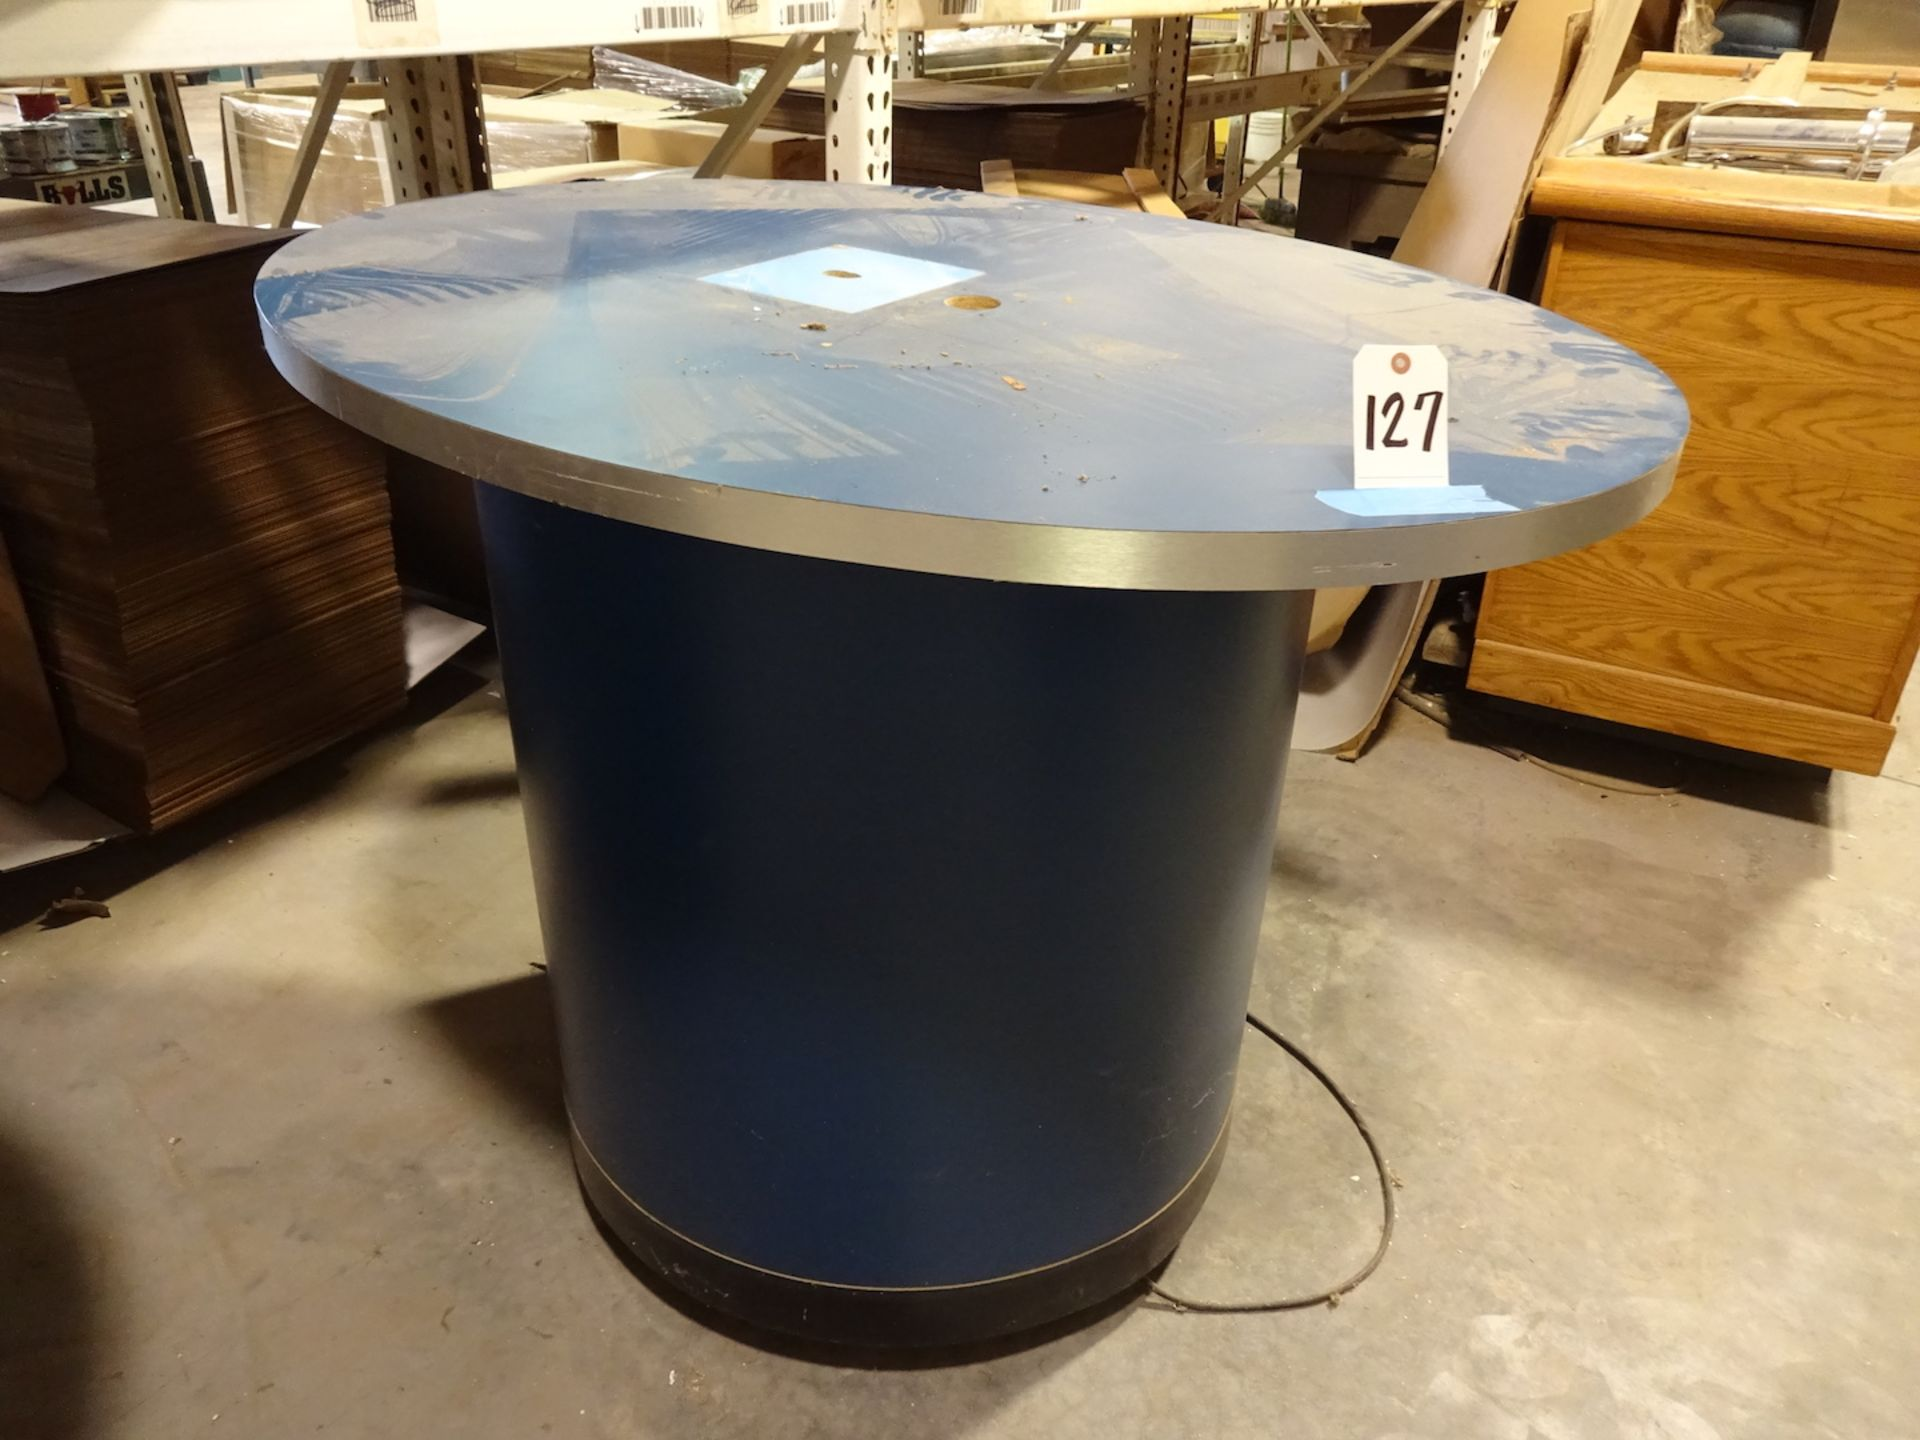 Lot 127 - Beverage Air 1/2 Barrel Beer Cooler, with Top (Kegerator)